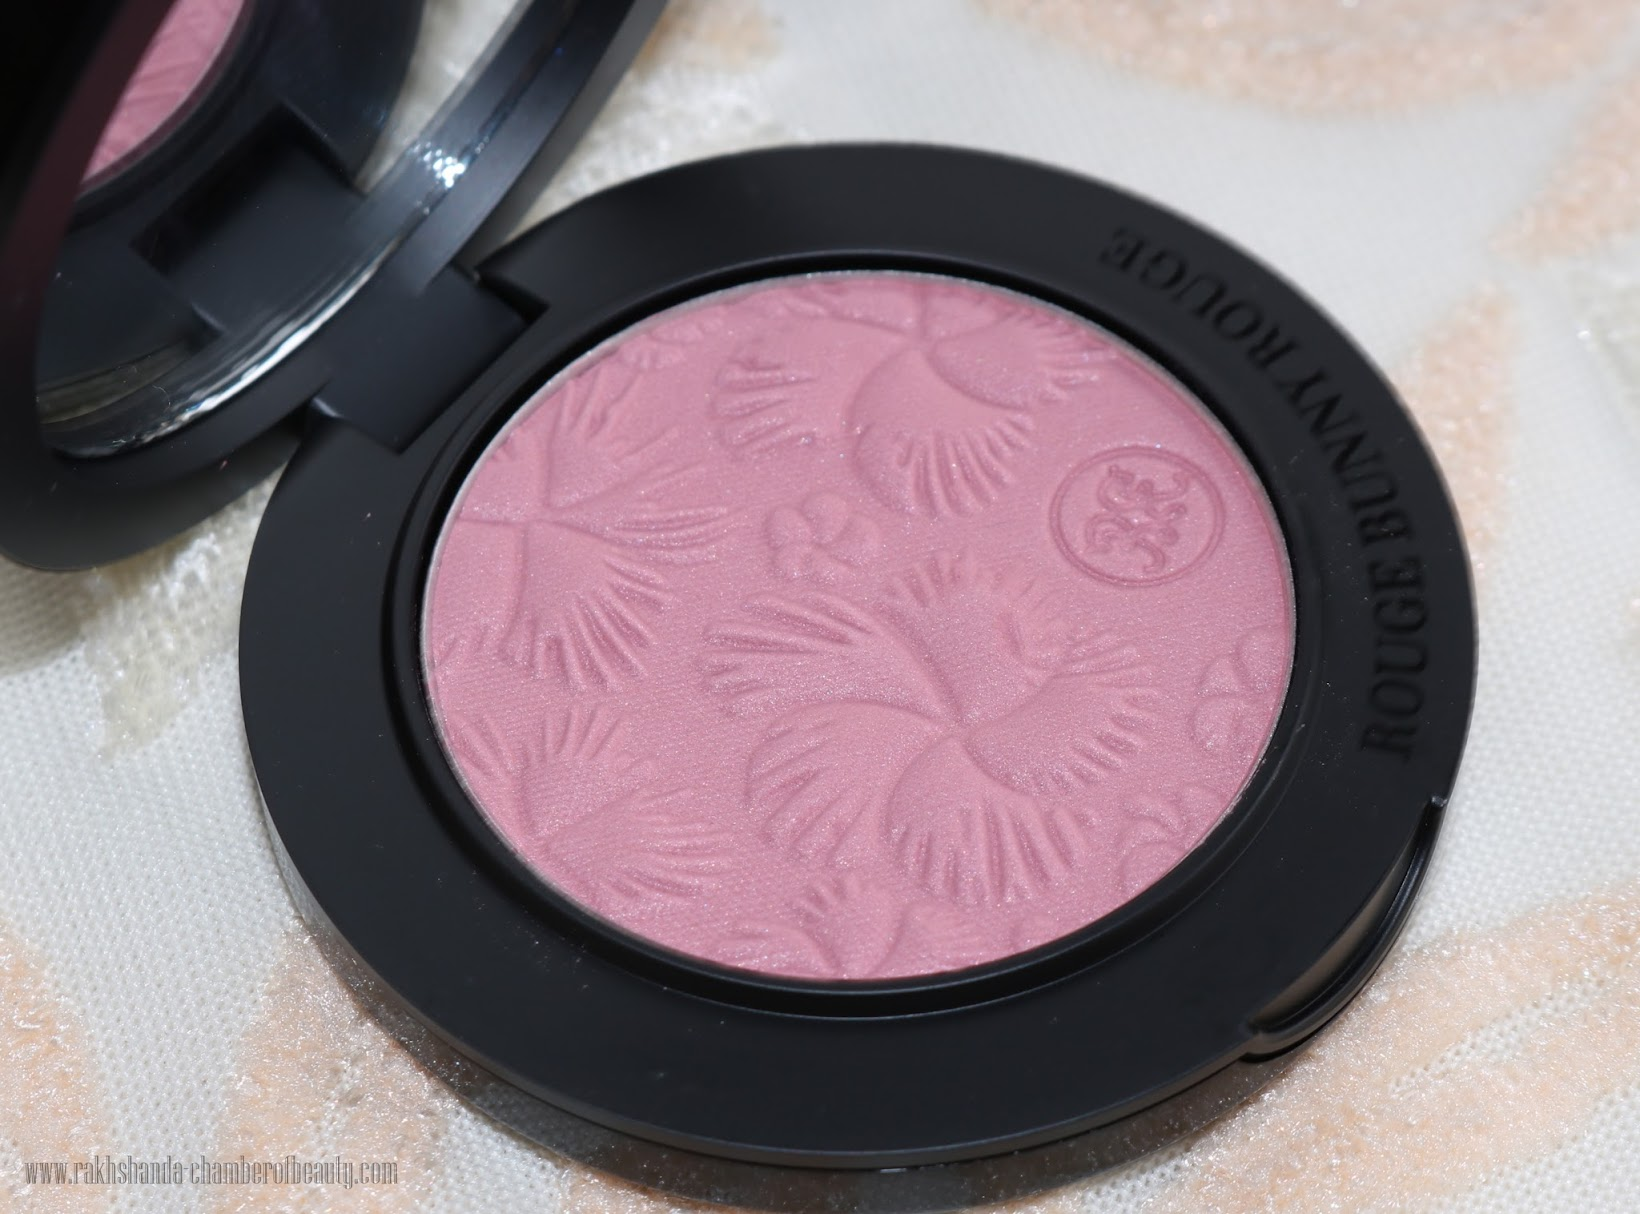 Rouge Bunny Rouge For The Love of Roses Original Skin blush- review, swatches & FOTD   New & Improved, Best luxury plum blush, Indian beauty blogger, Chamber of Beauty